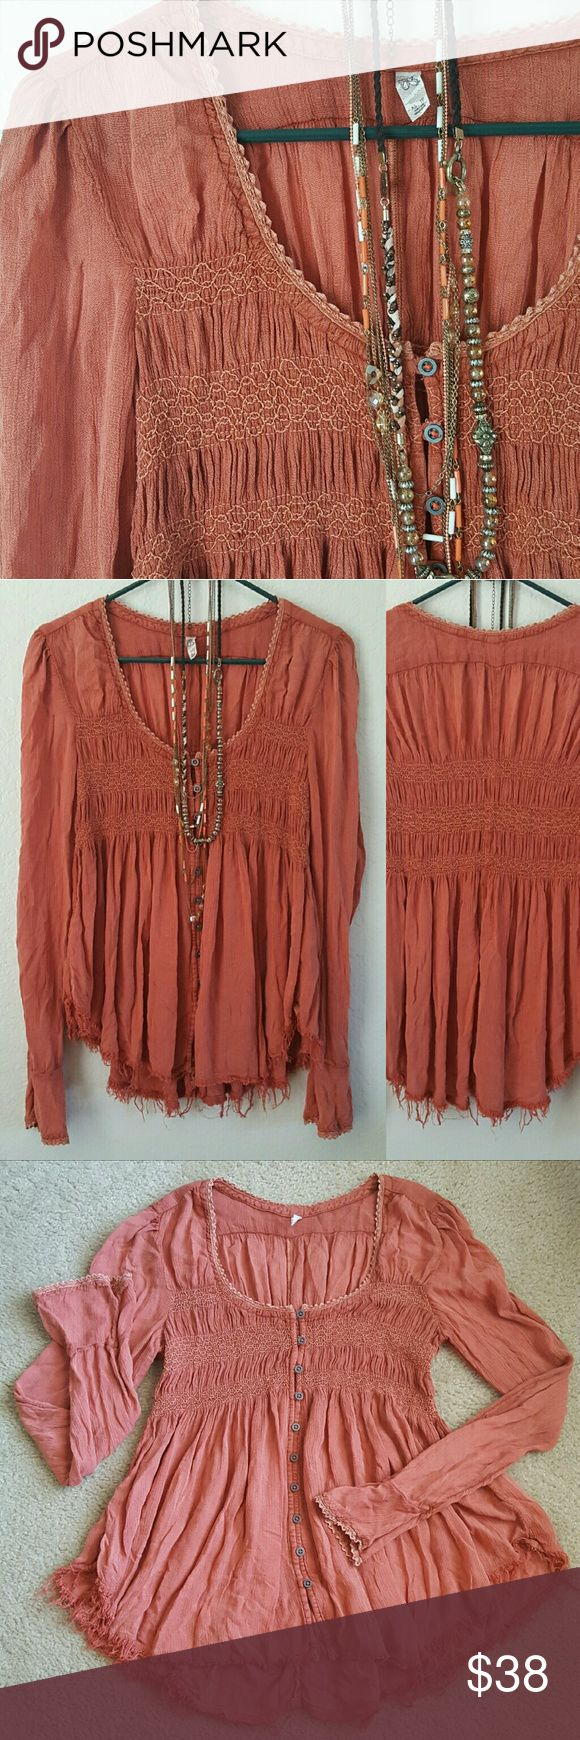 """Free People Blue Bird Smocked top pink sand Gorgeous Free People boho style """"Blue Bird smocked"""" top. Has a worn tattered look to it. Bell sleeves, metal button front, smocking on front and back, fraying at bottom and lace details at neck and sleeves.   No visible signs of wear.   Size xsmall. Underarm to underarm 15"""" length 24-26""""  Some stretch in smocking. Buttons gap so would need something underneath. Free People Tops Blouses"""